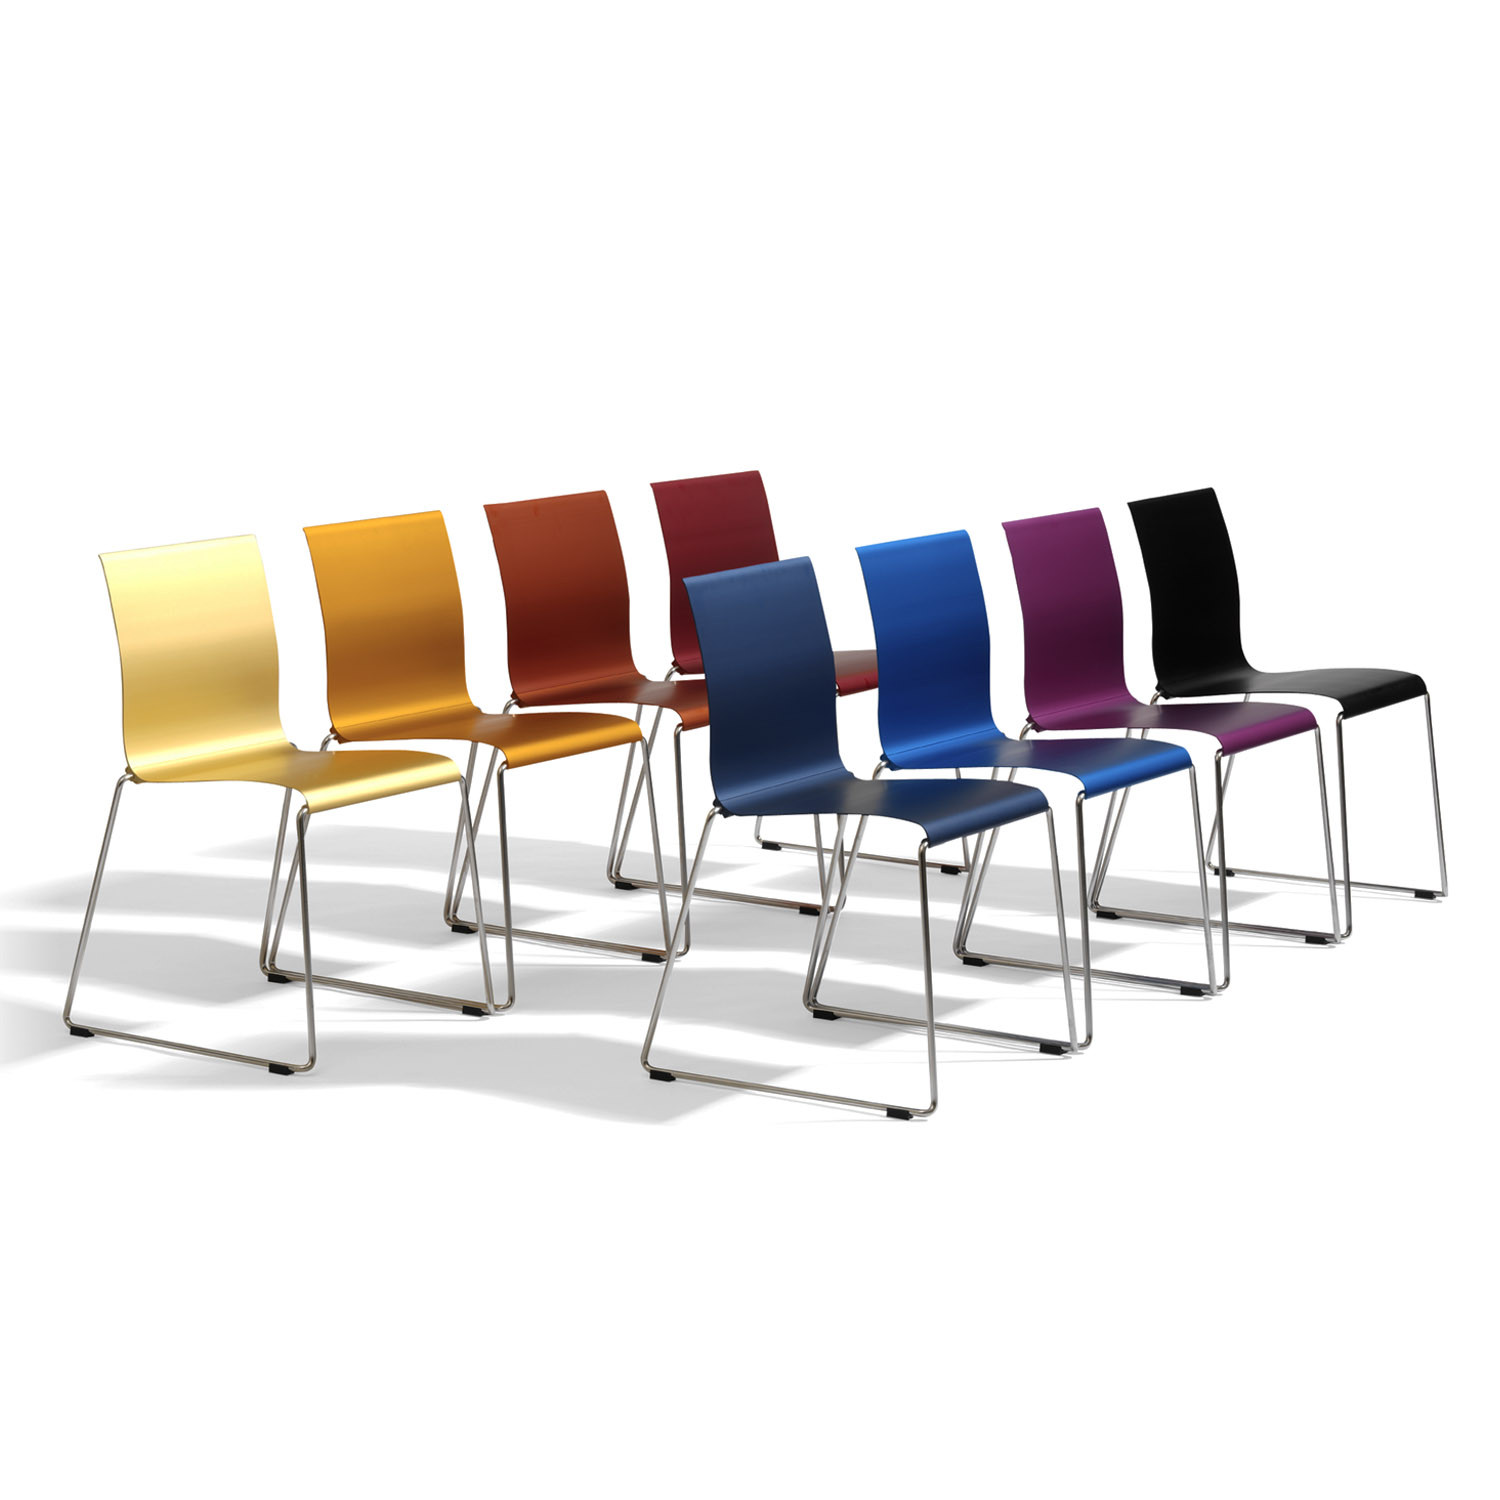 Sting O30 Chairs by Bla Station